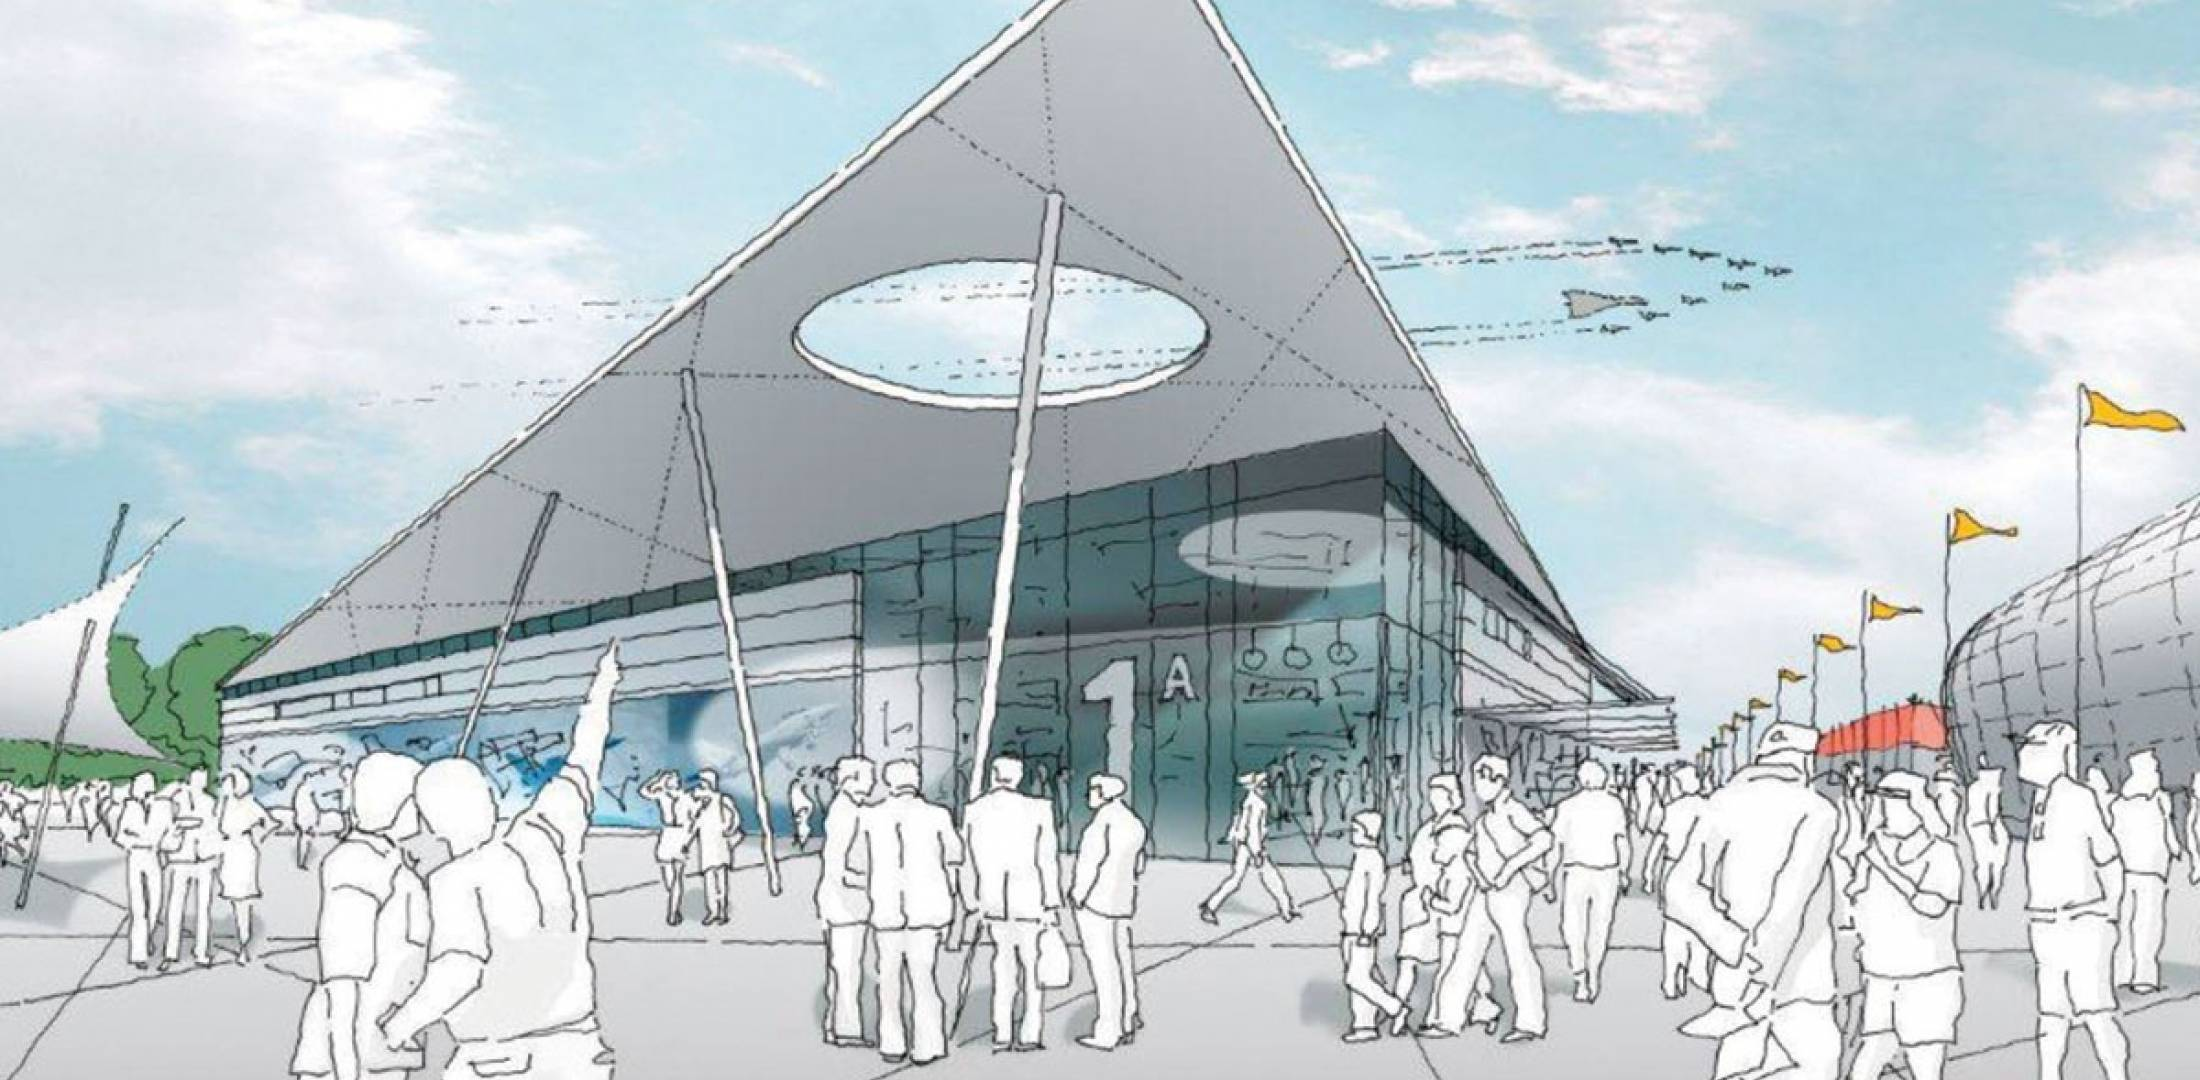 A two-phase upgrade to the Farnborough International Airshow site will see, first, a permanent chalet row, followed by a permanent exhibit hall. Phase 1 should be completed in time for next year's show. Phase 2 is scheduled for completion in time for the 2016 event.